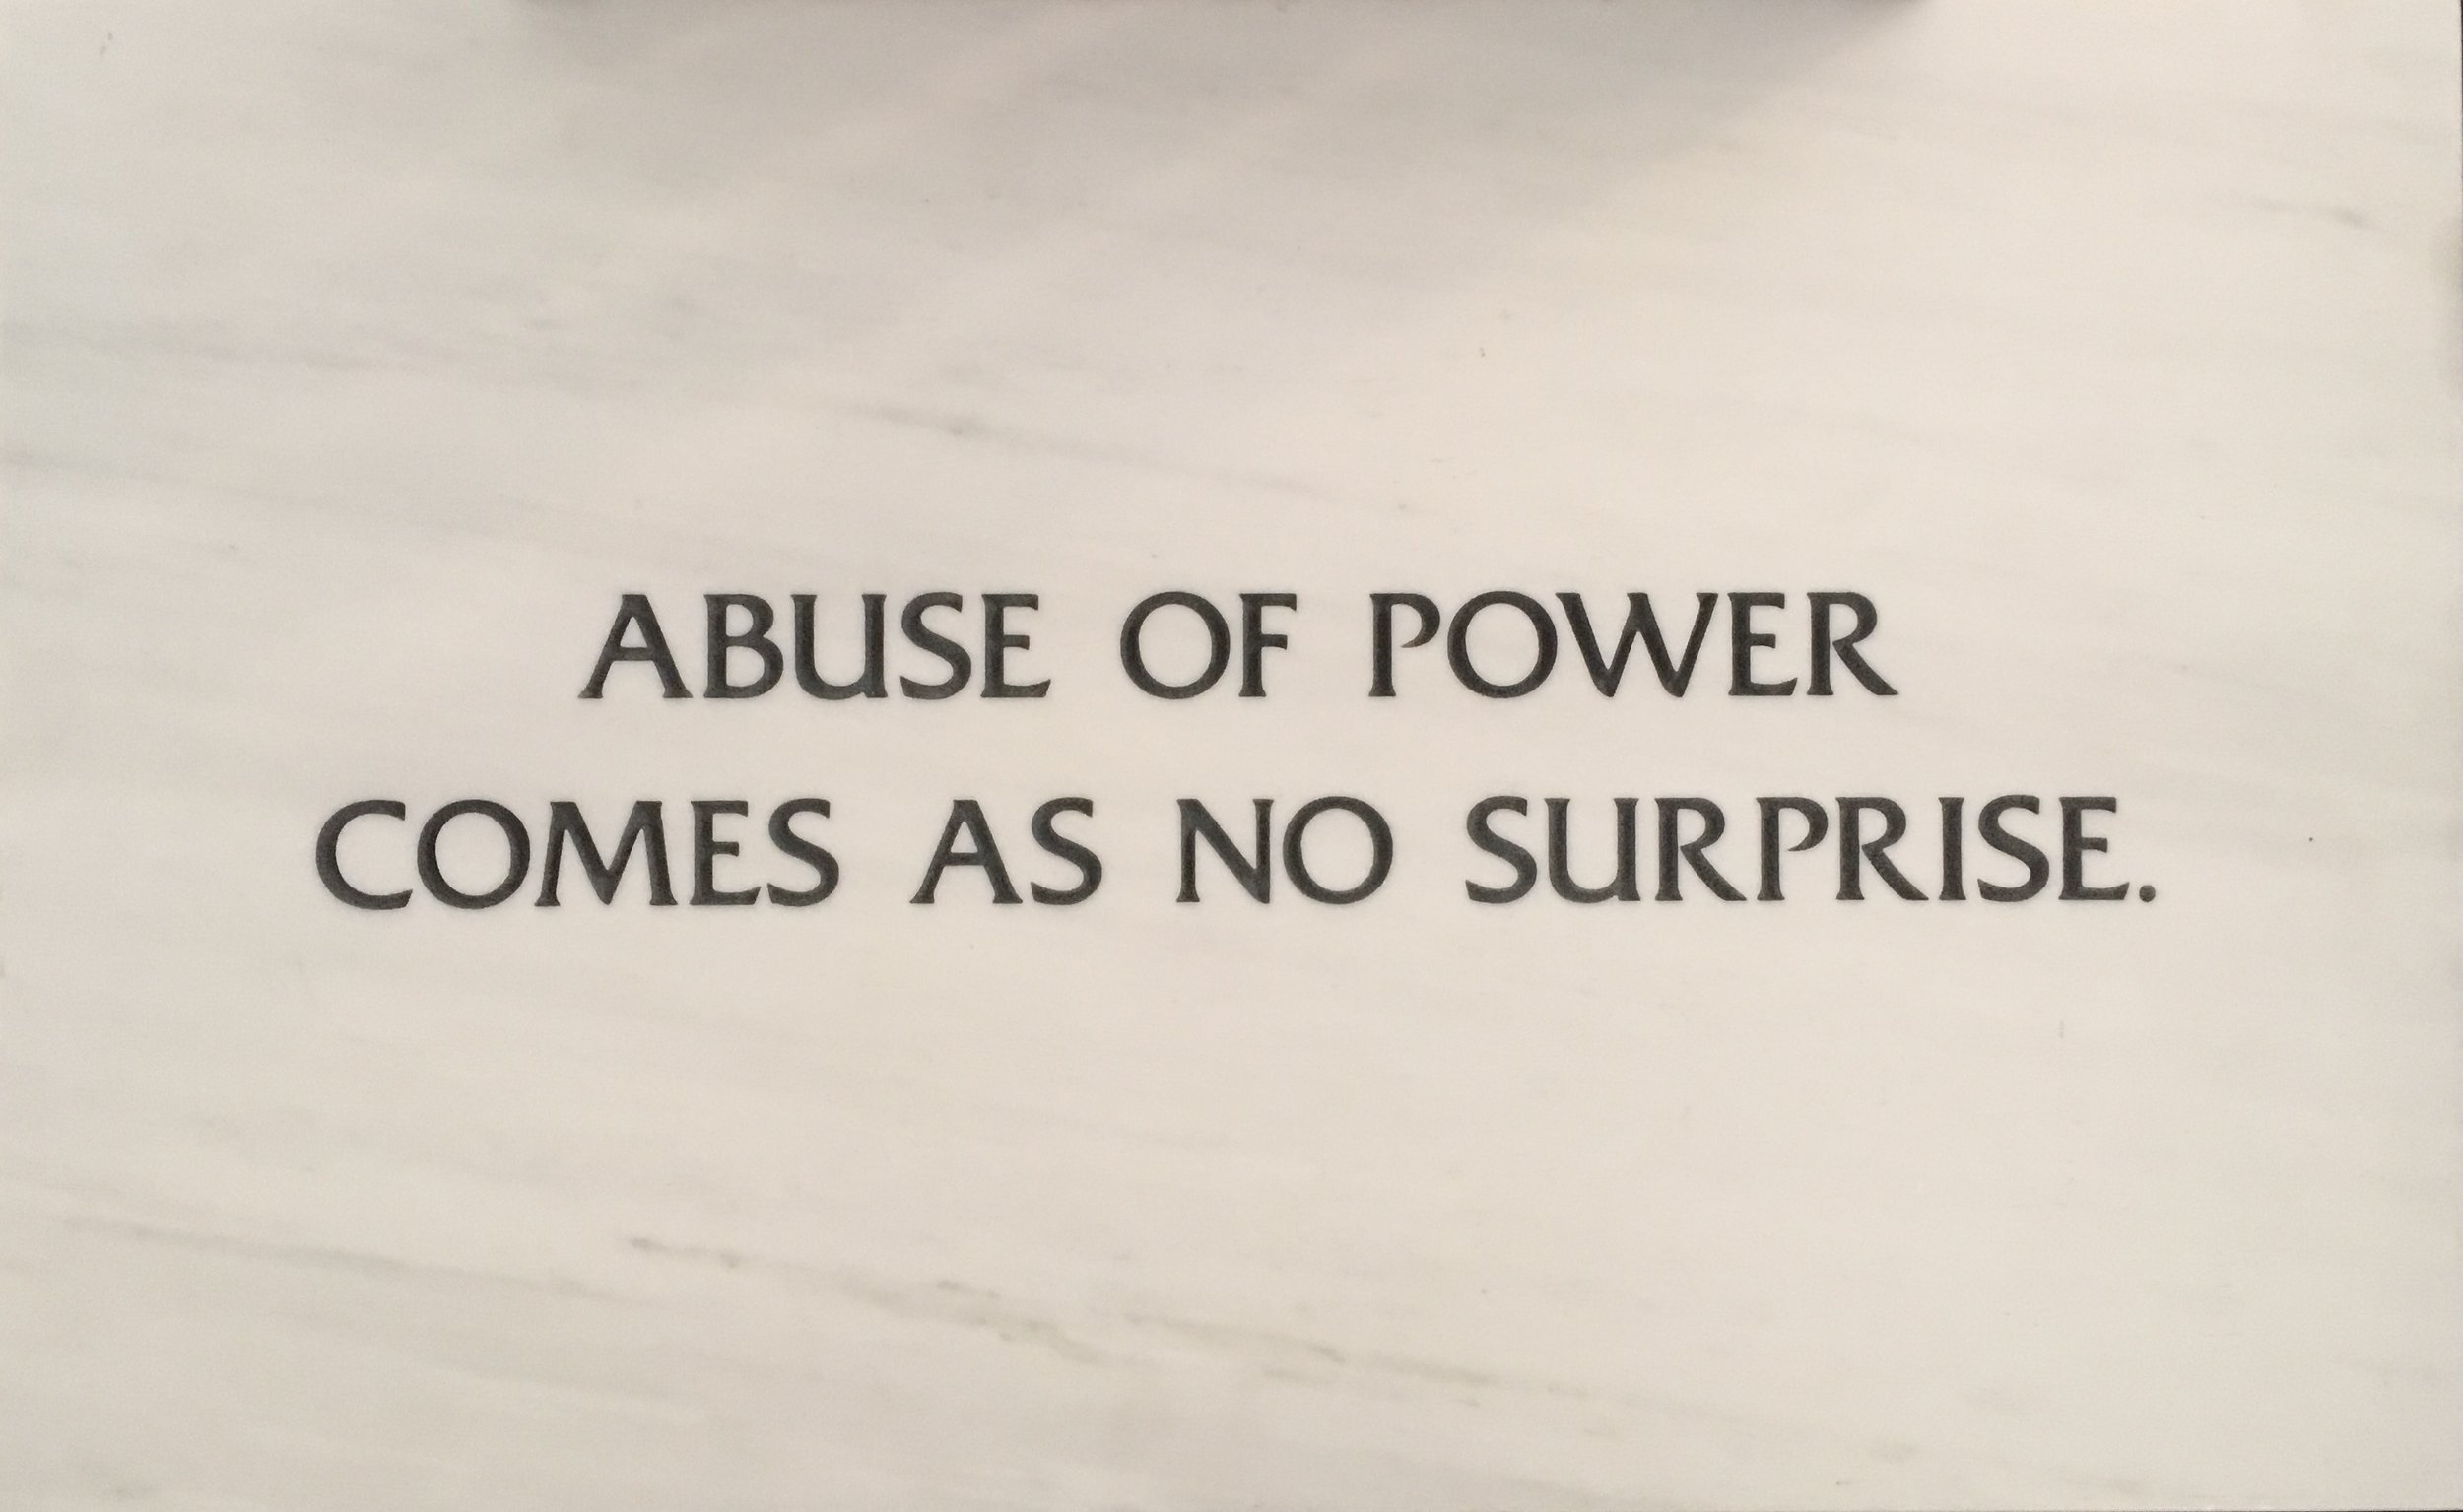 AbuseOfPower.JPG